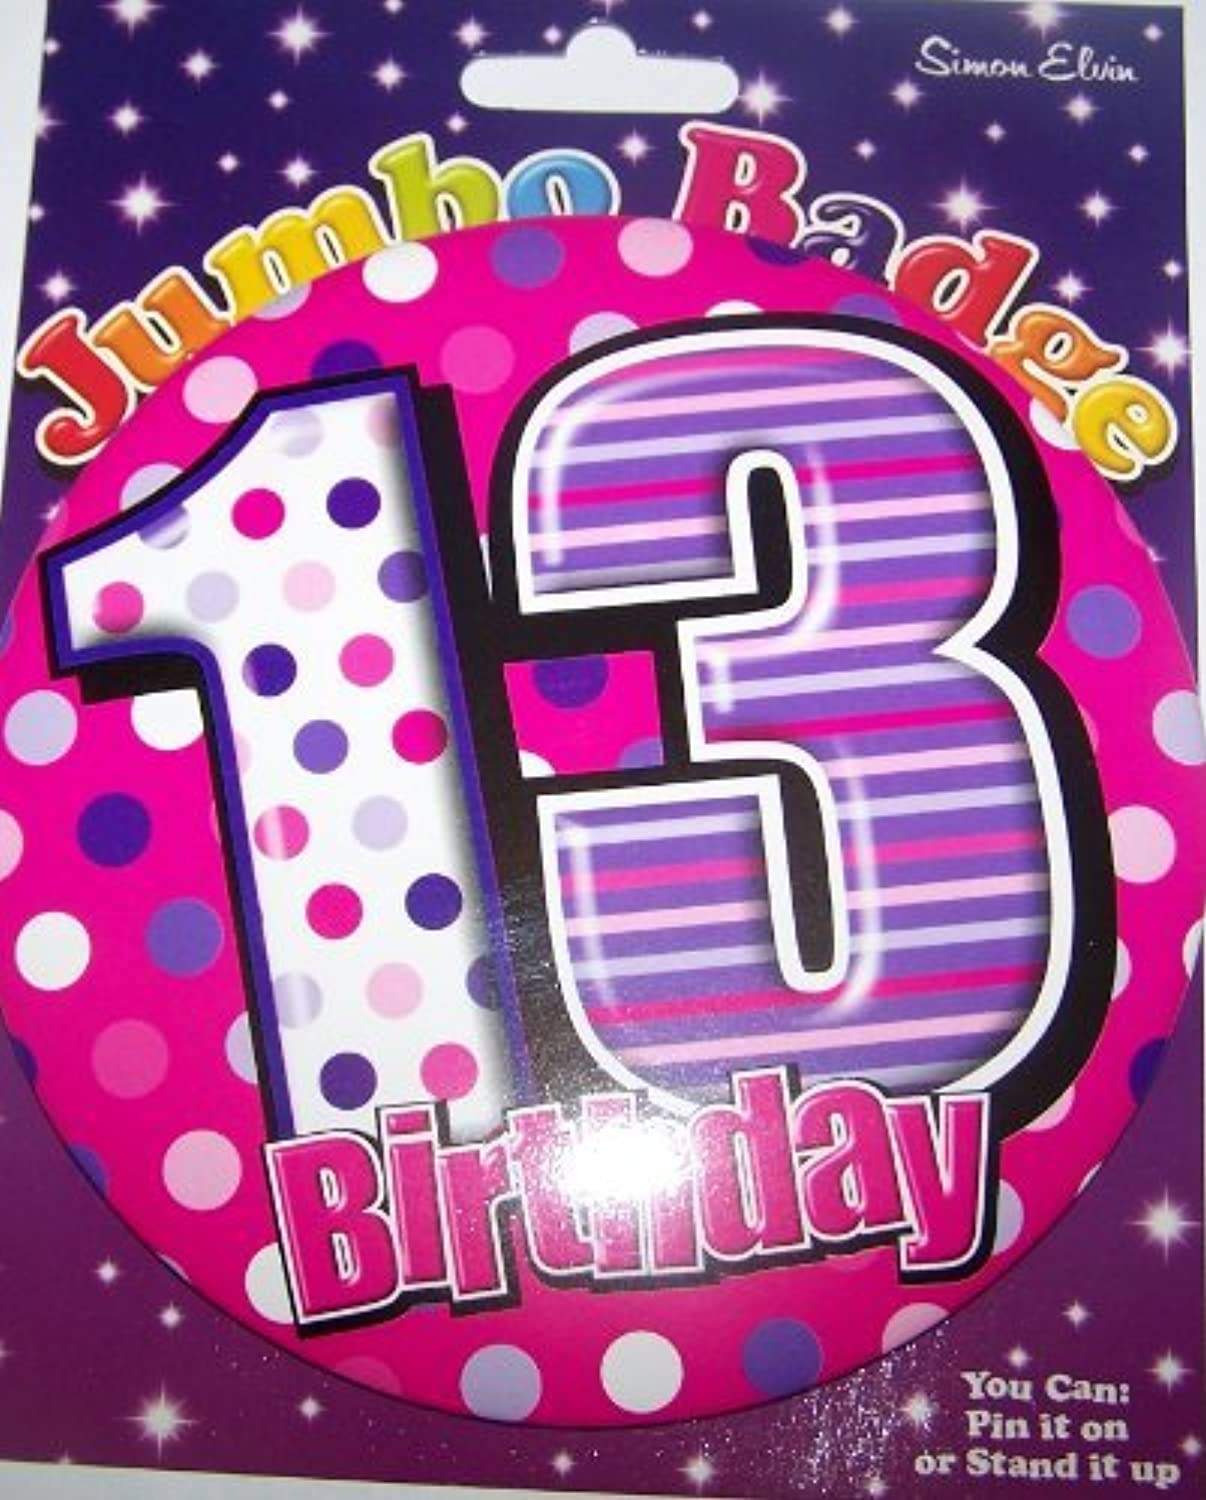 13 years old birthday badge for girl by Simon Elvin